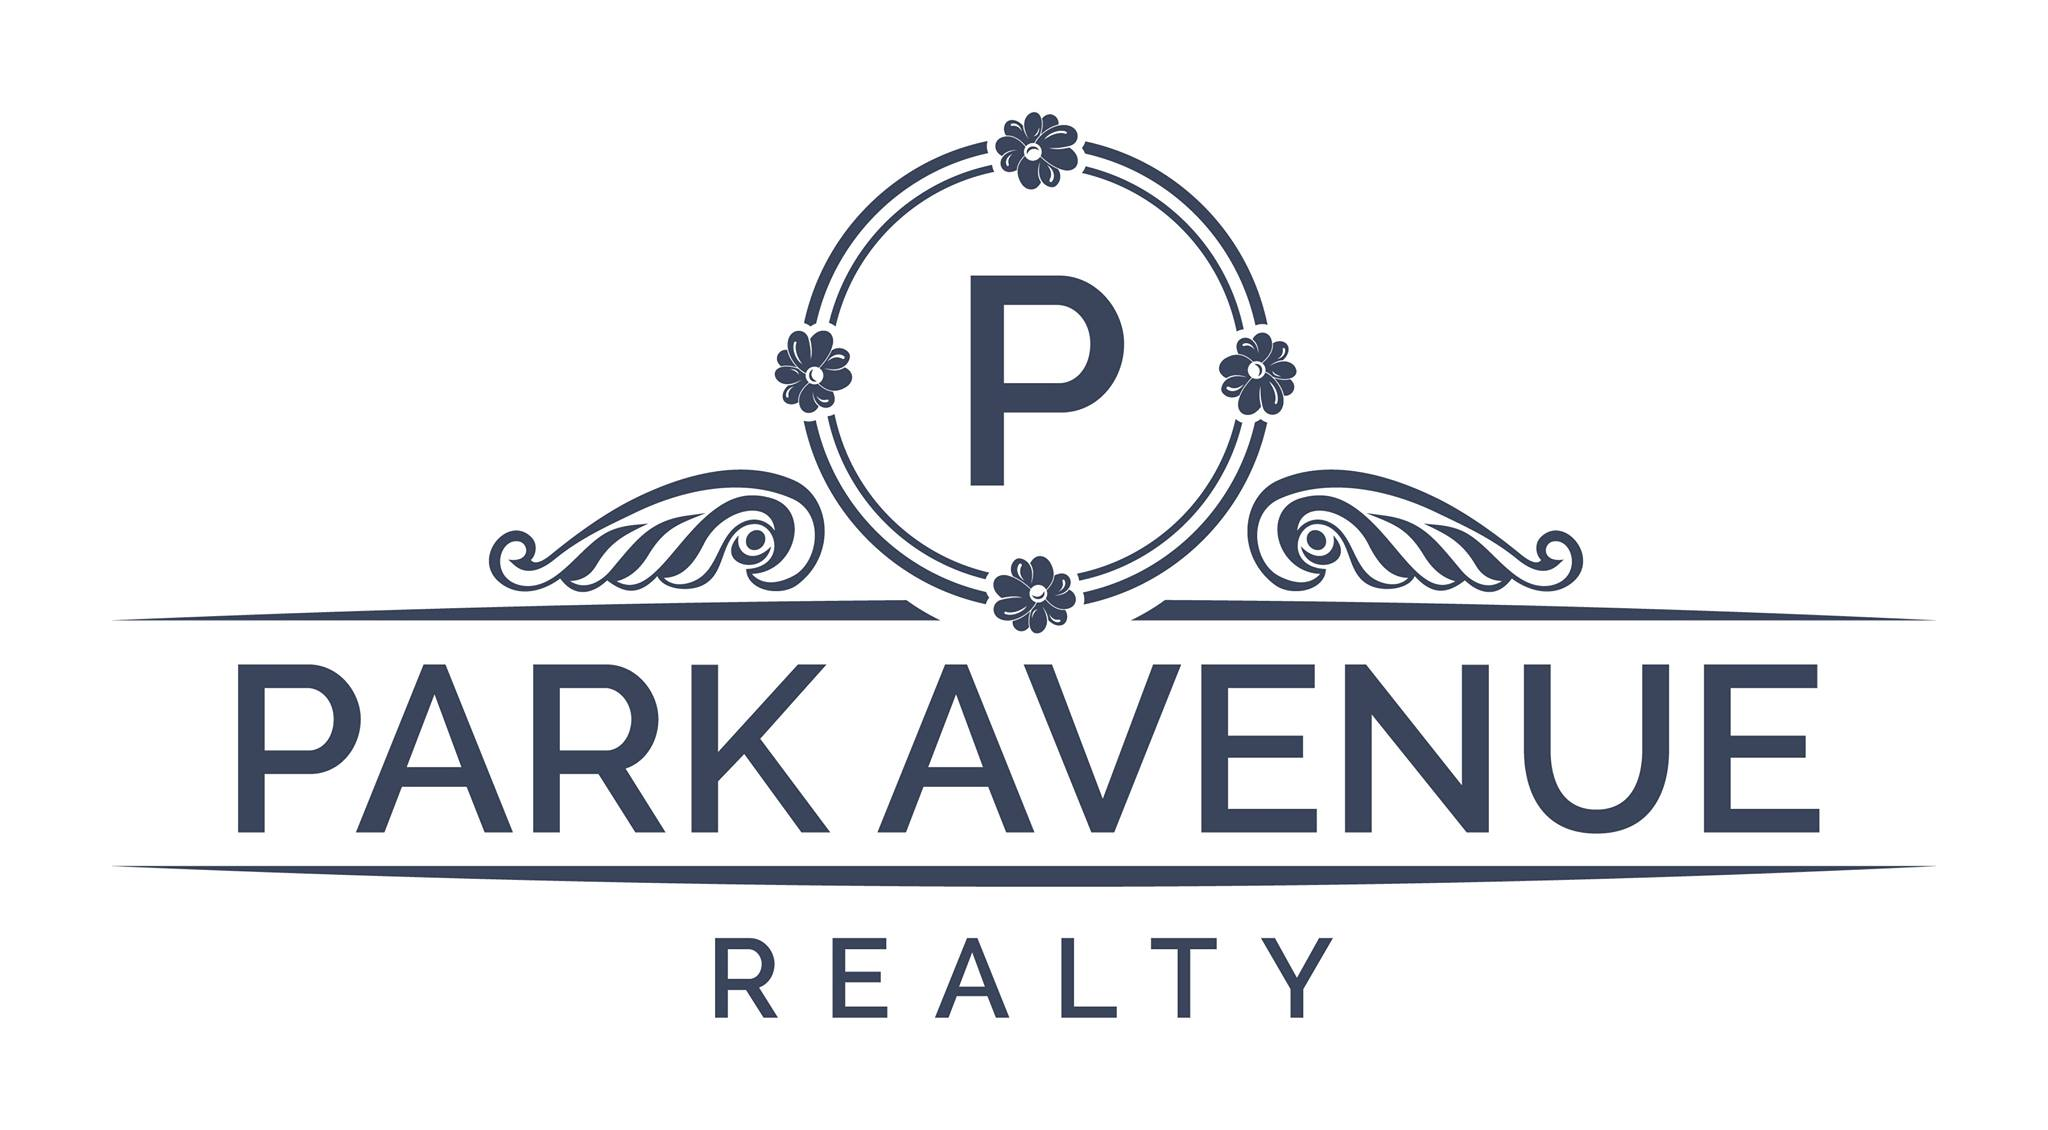 Park Avenue Realty LB's realty website